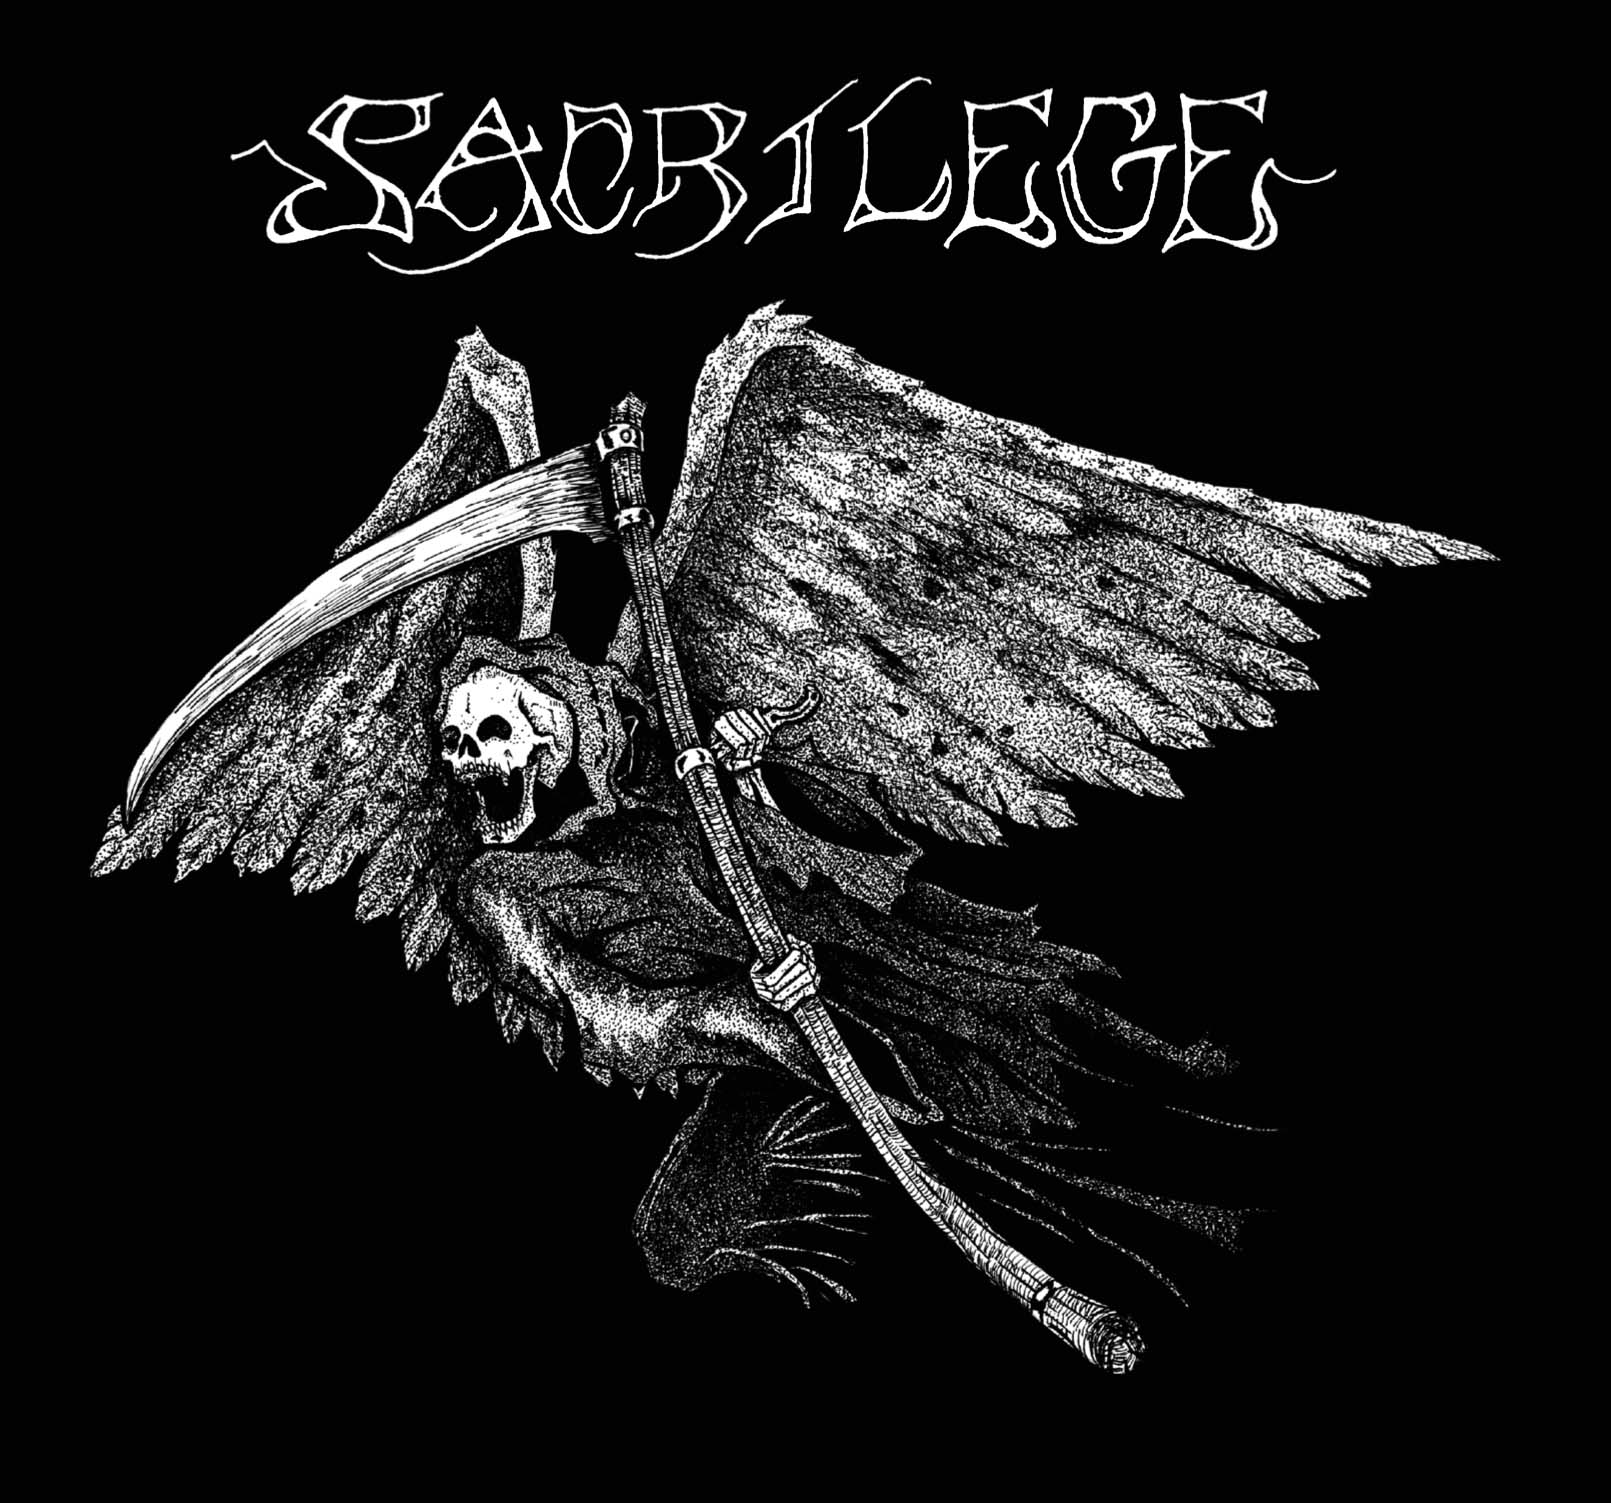 Sacrilege - Time To Face The Reaper (The Demos) 1984/1986